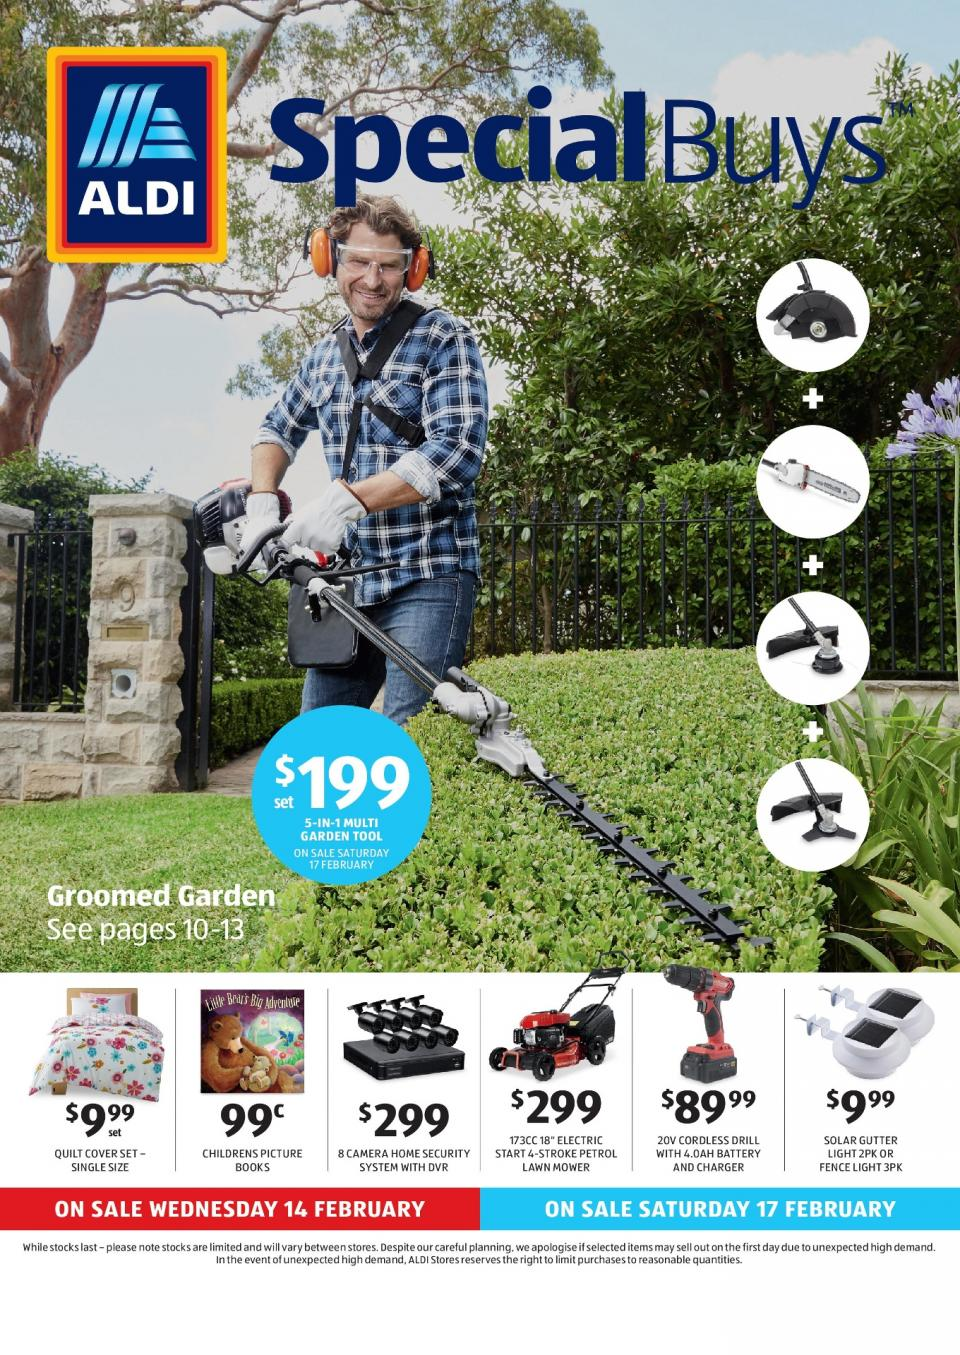 Aldi special buys week 7 2018 for Aldi gardening tools 2016